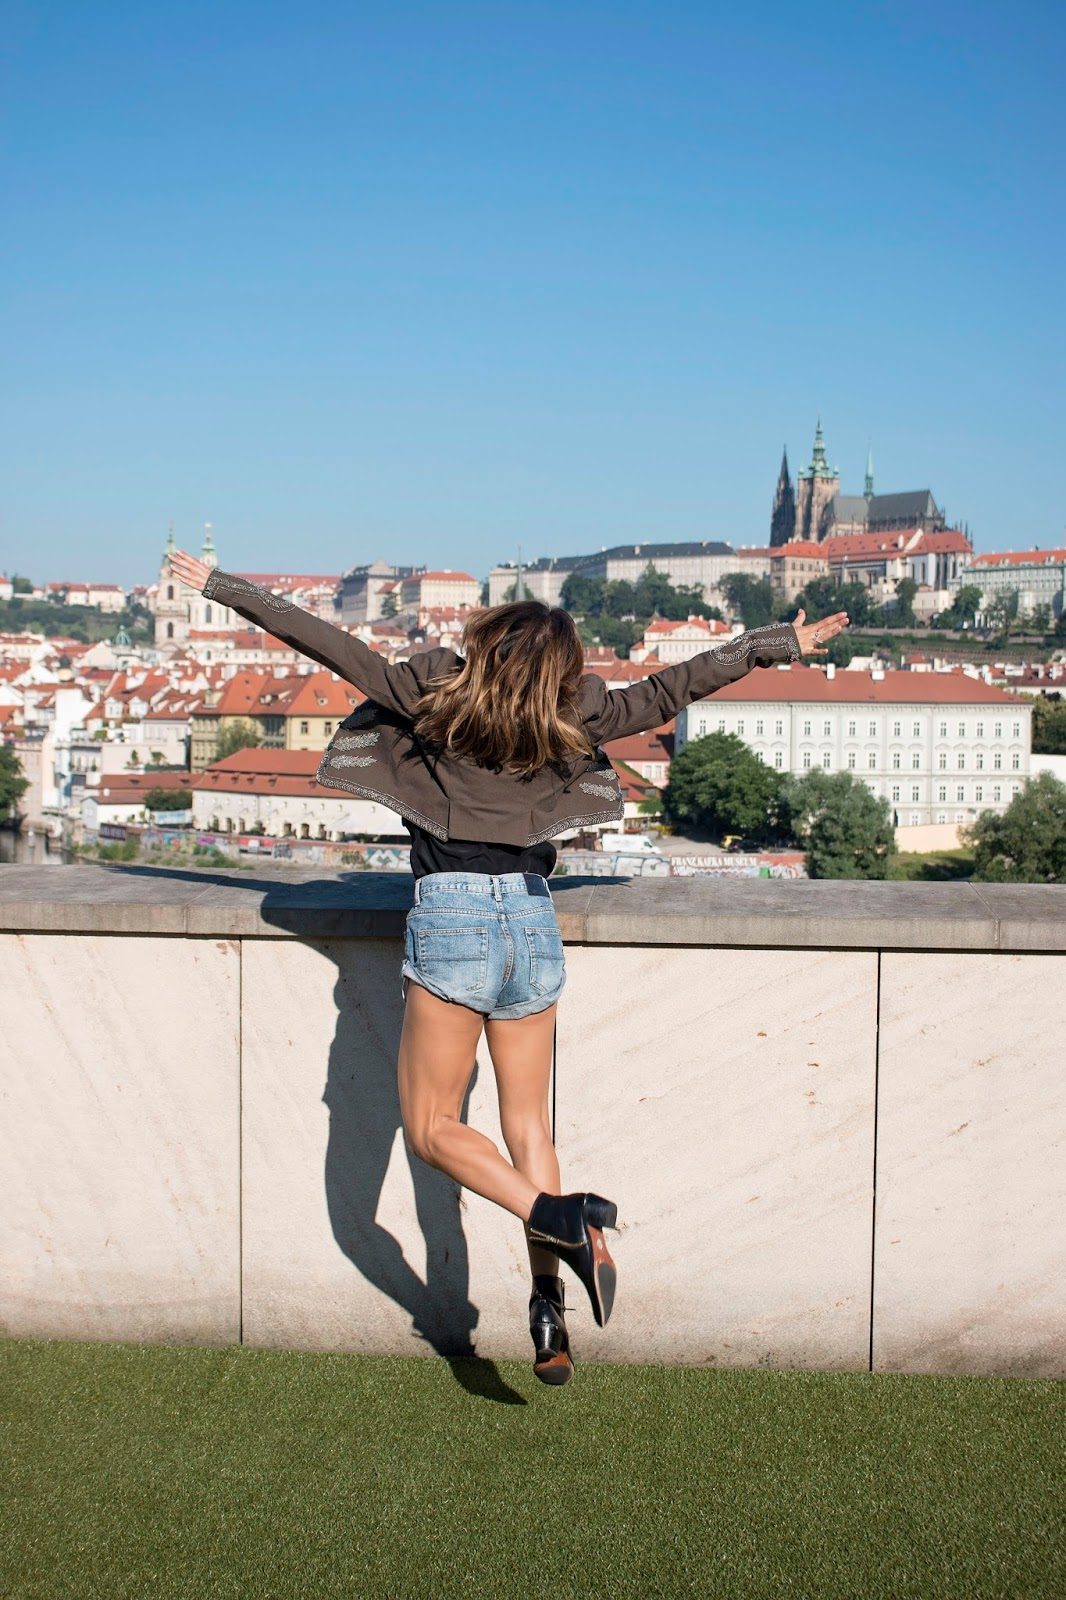 Whitney's Wonderland UK Top Luxury Travel and Lifestyle Blogger reveals two hot spots you must stay at in Prague